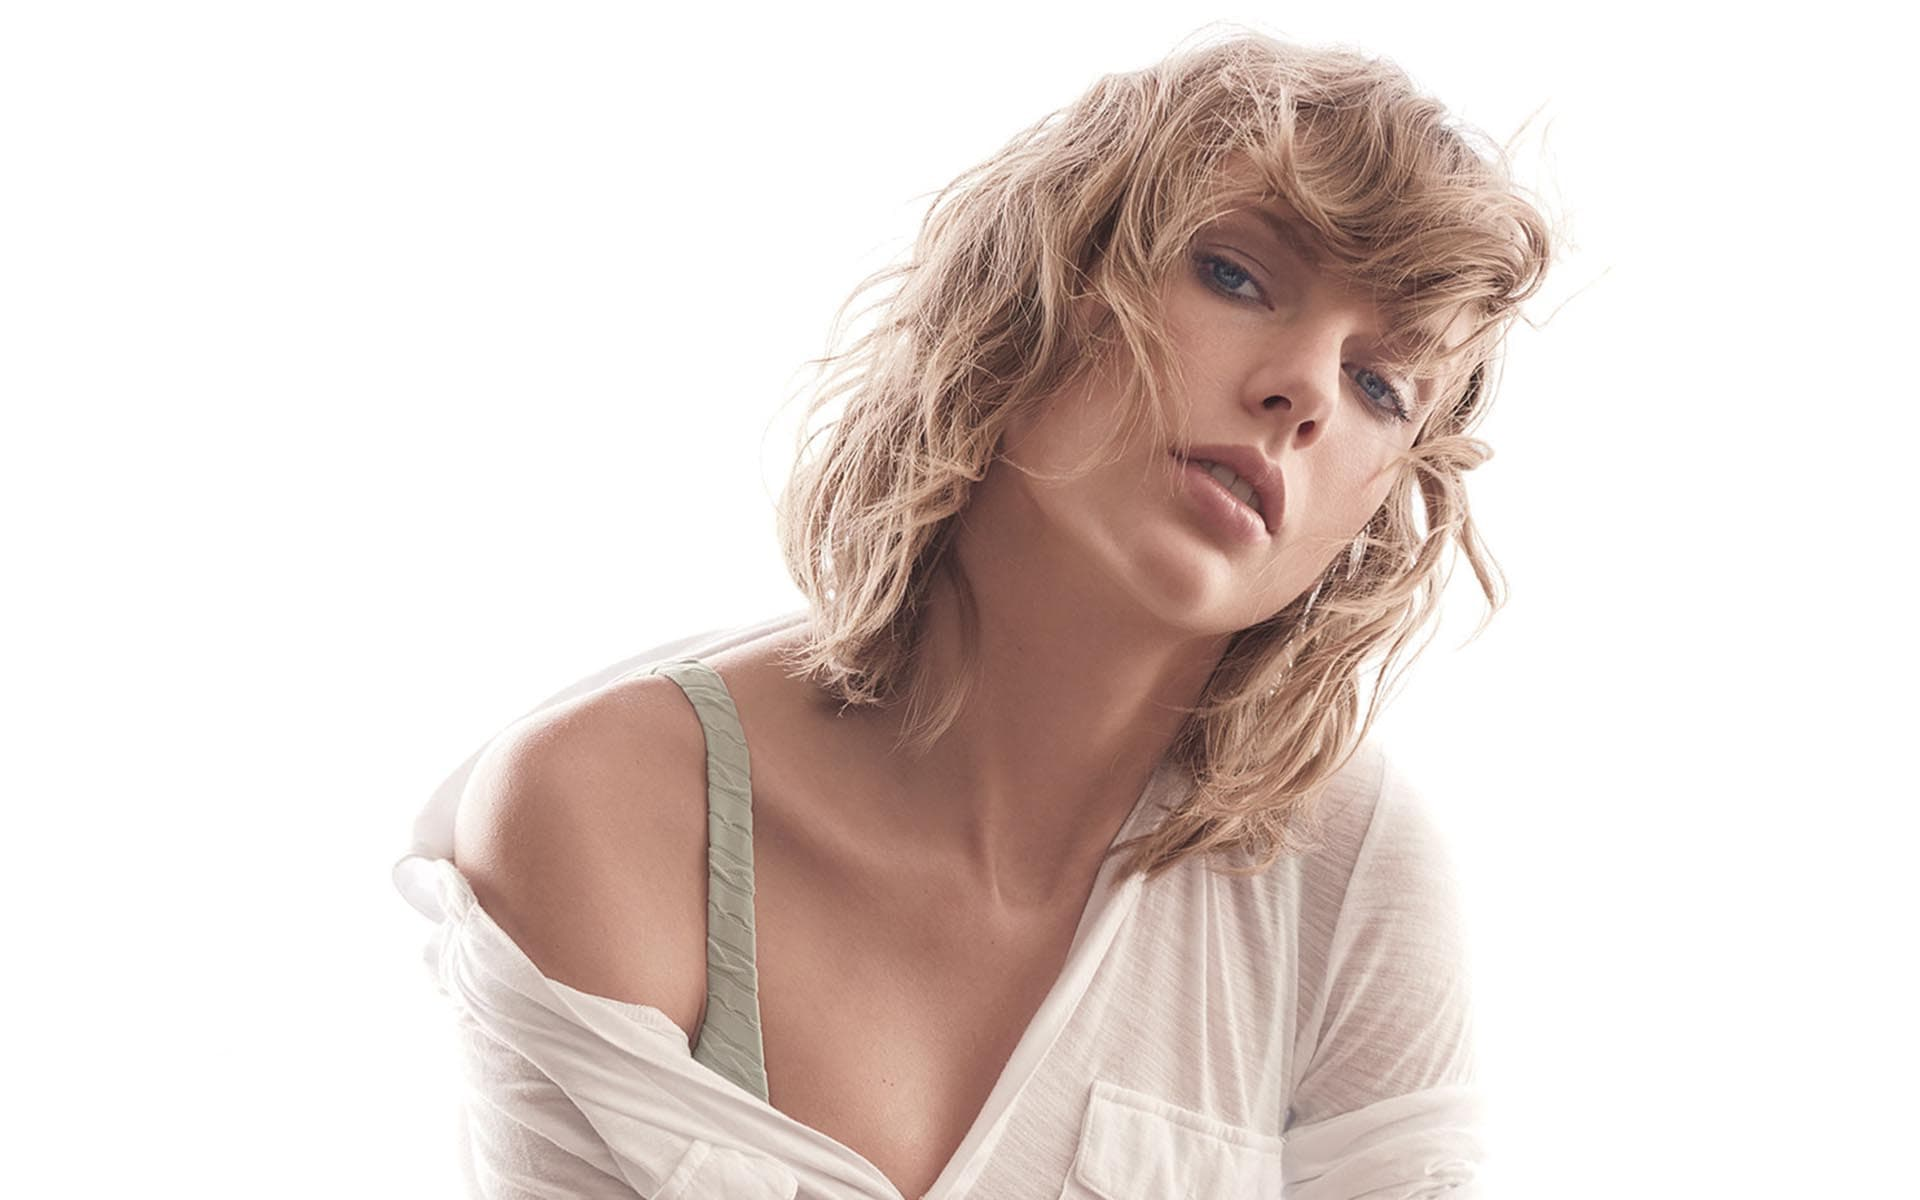 Taylor Swift Images HD